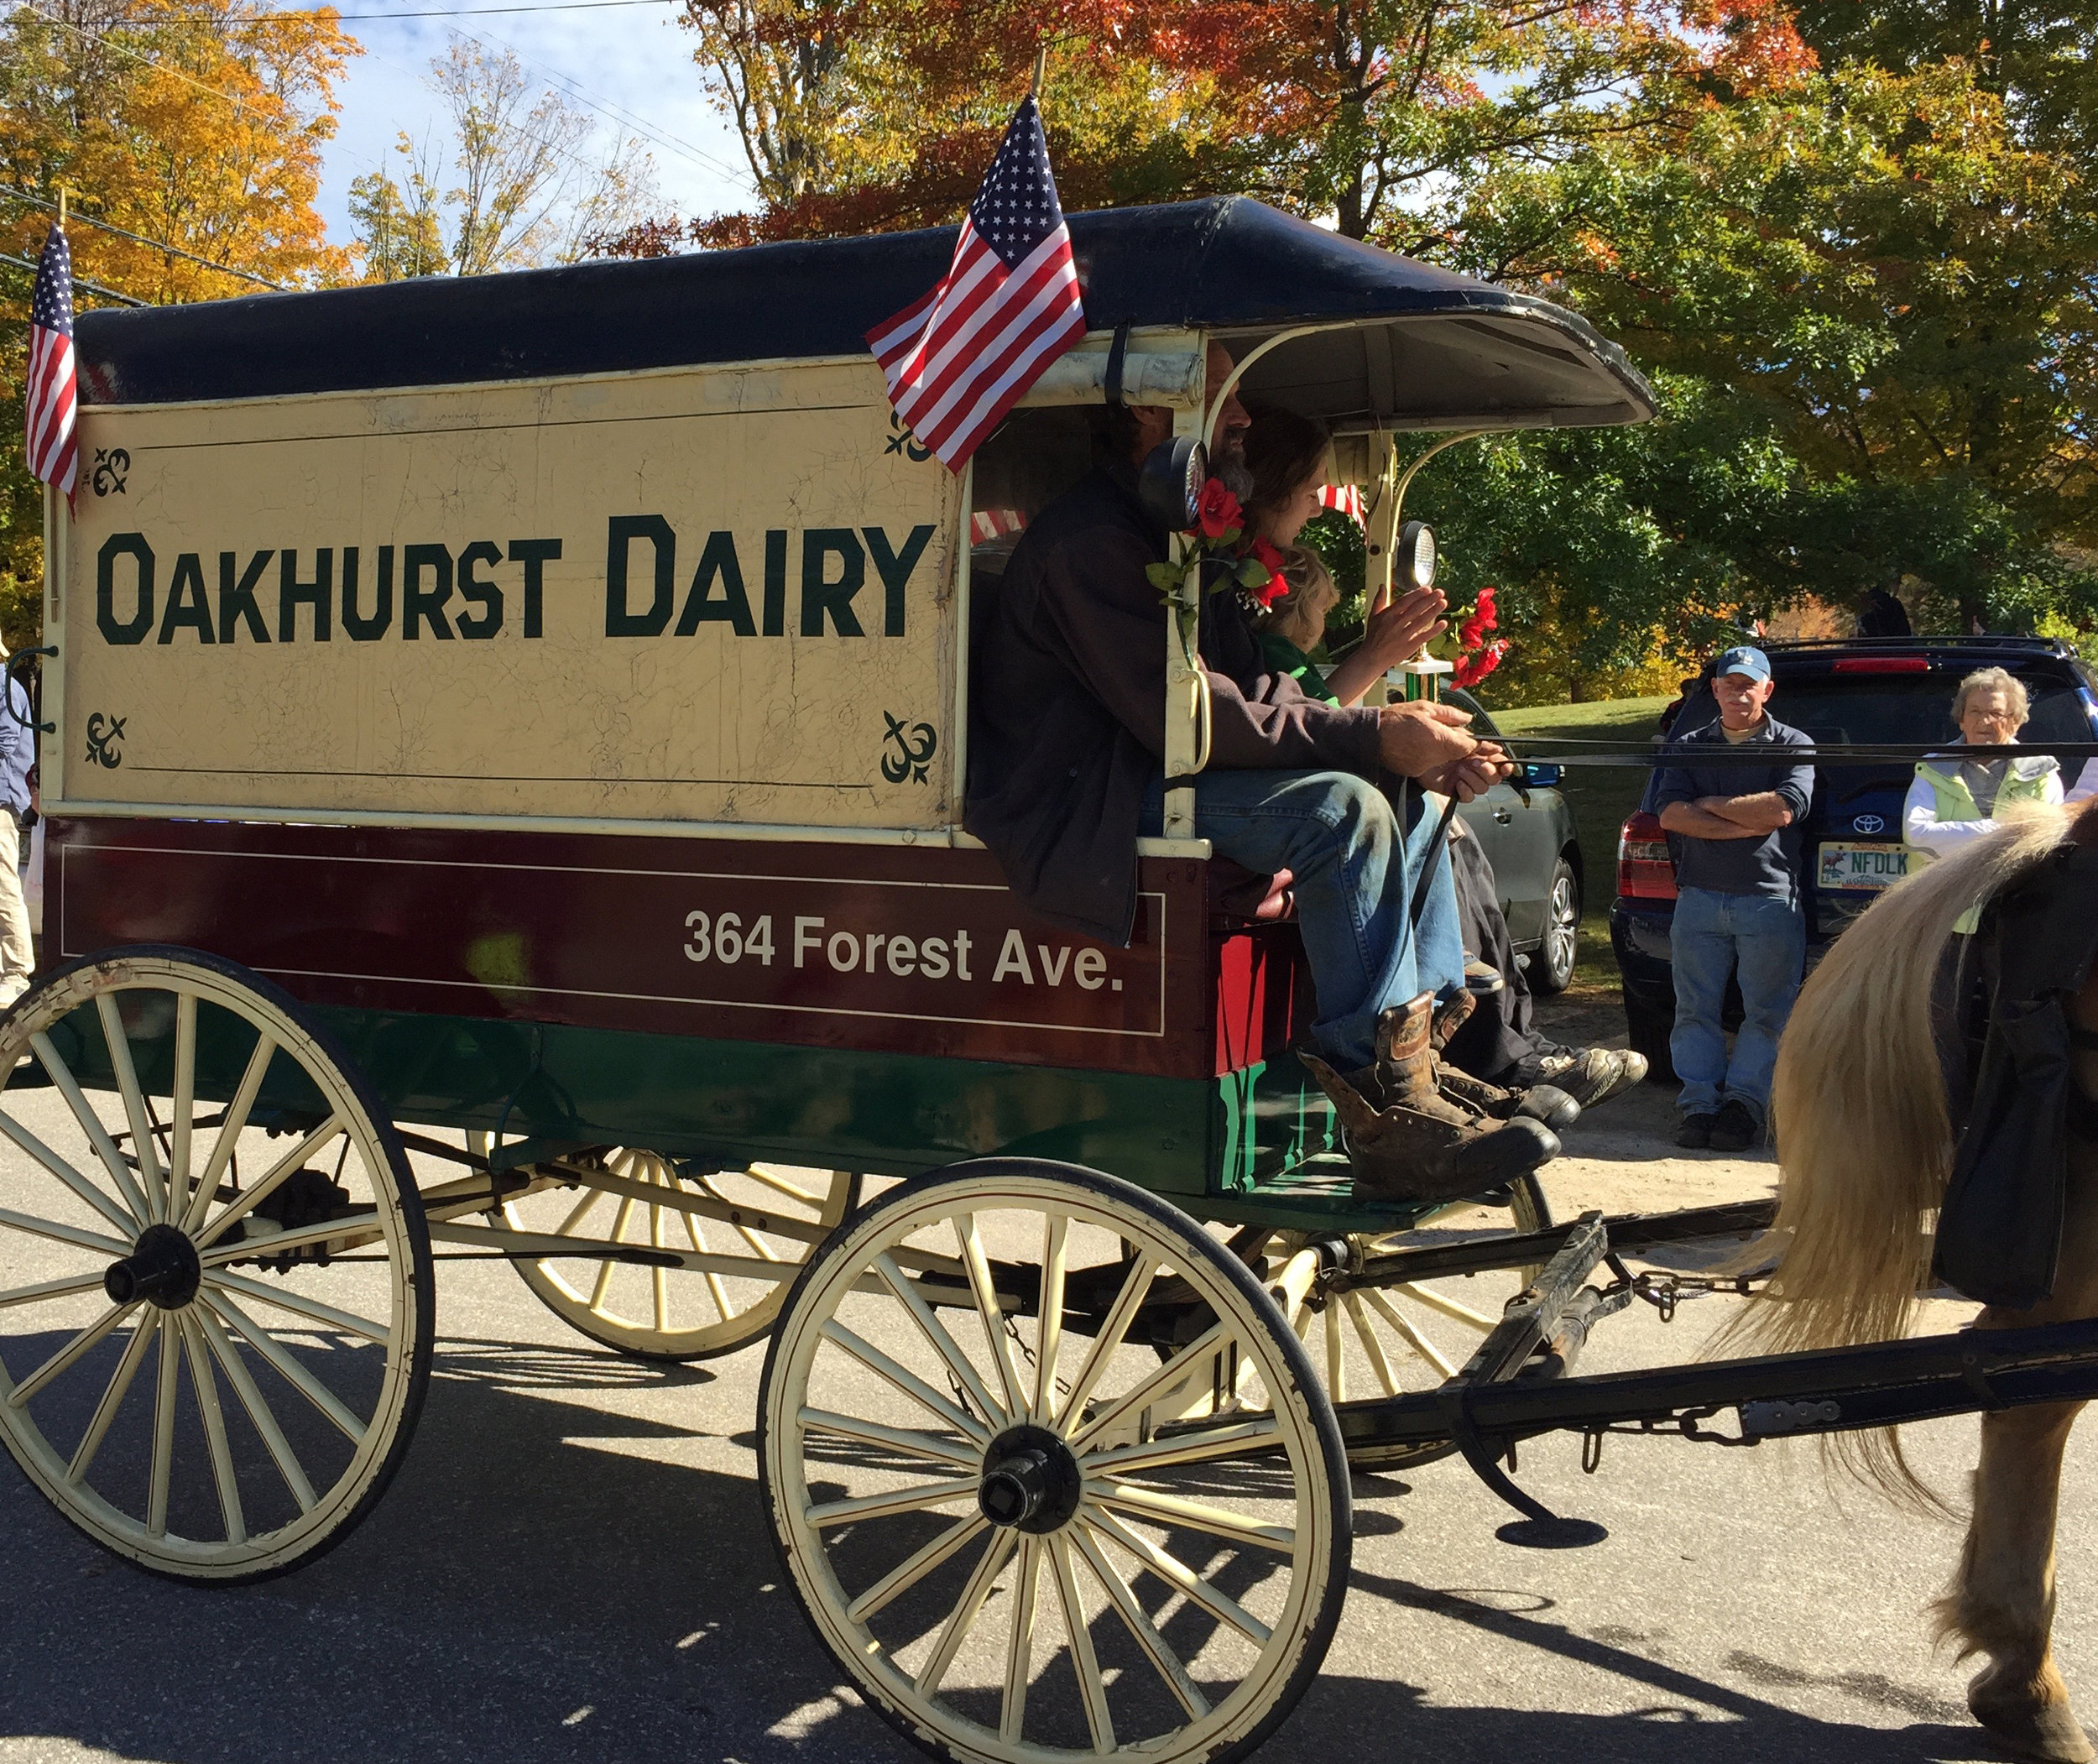 One of the old-time vehicles in the Sandwich Fair parade. (Courtesy photo)